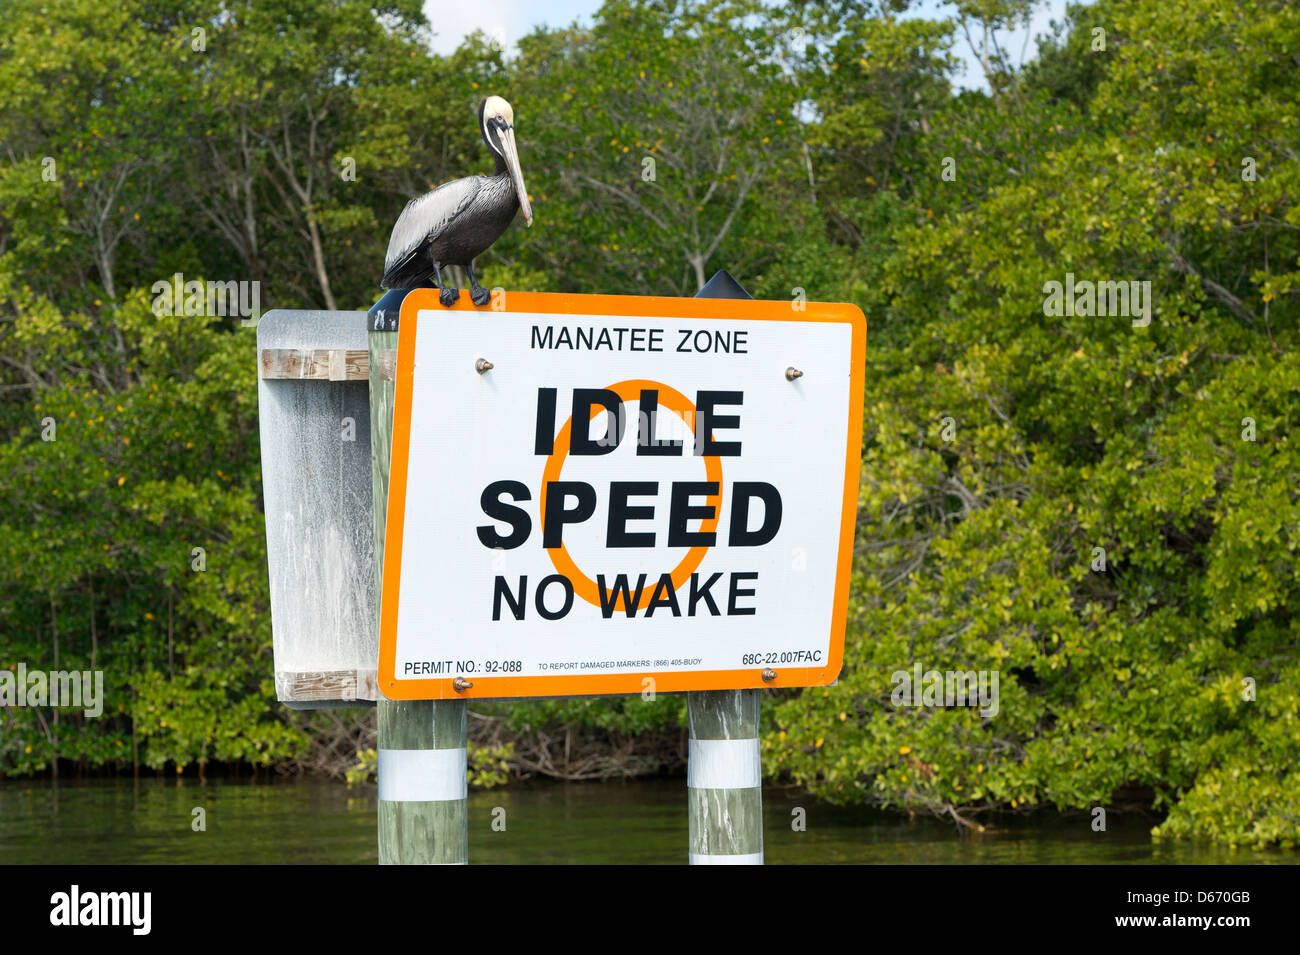 A Brown Pelican (Pelecanus occidentalis) perched on a Manatee Zone sign in the Indian River, Vero Beach, Florida - Stock Image